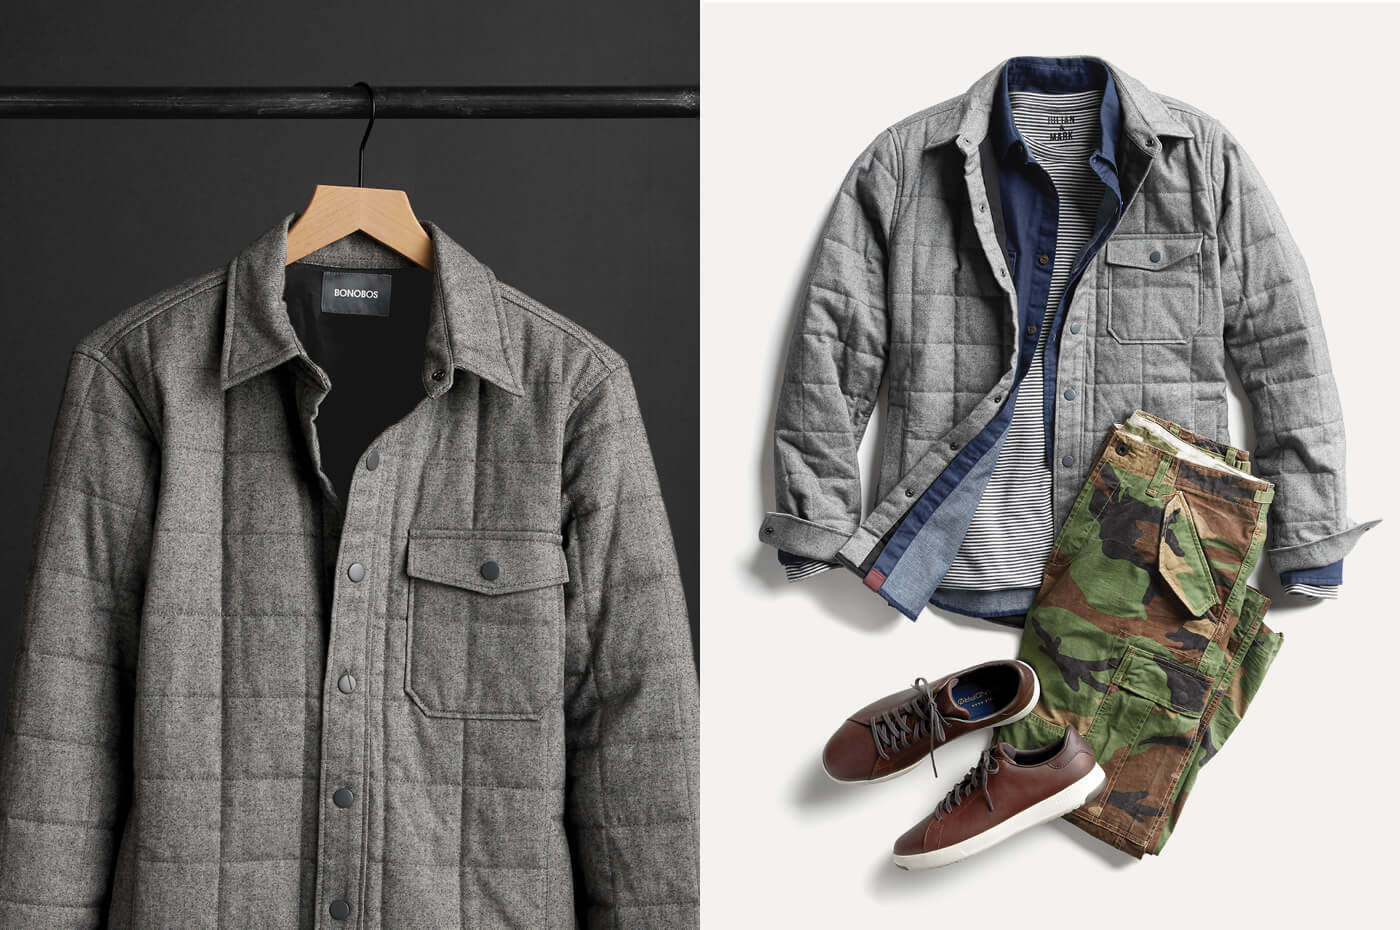 af62d3f4e7d The Top 7 Essential Layering Pieces For Every Man